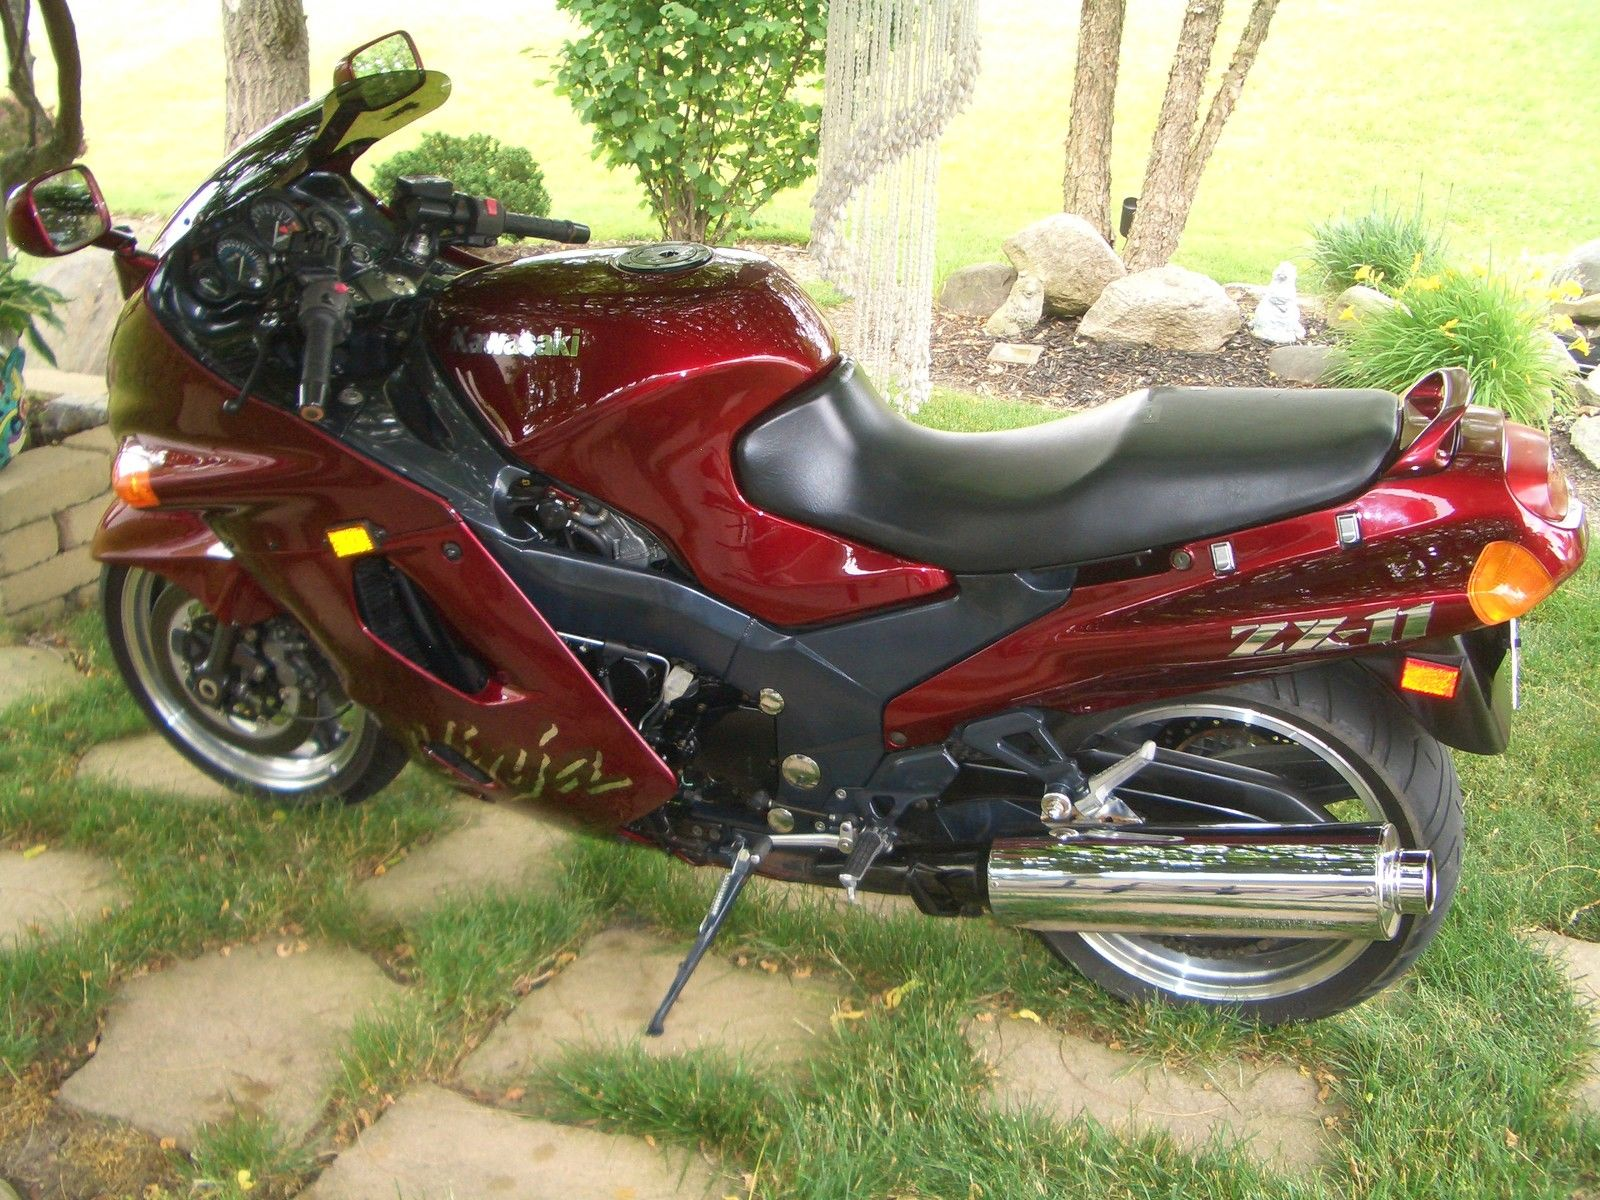 Kawasaki Archives - Page 15 of 42 - Rare SportBikes For Sale